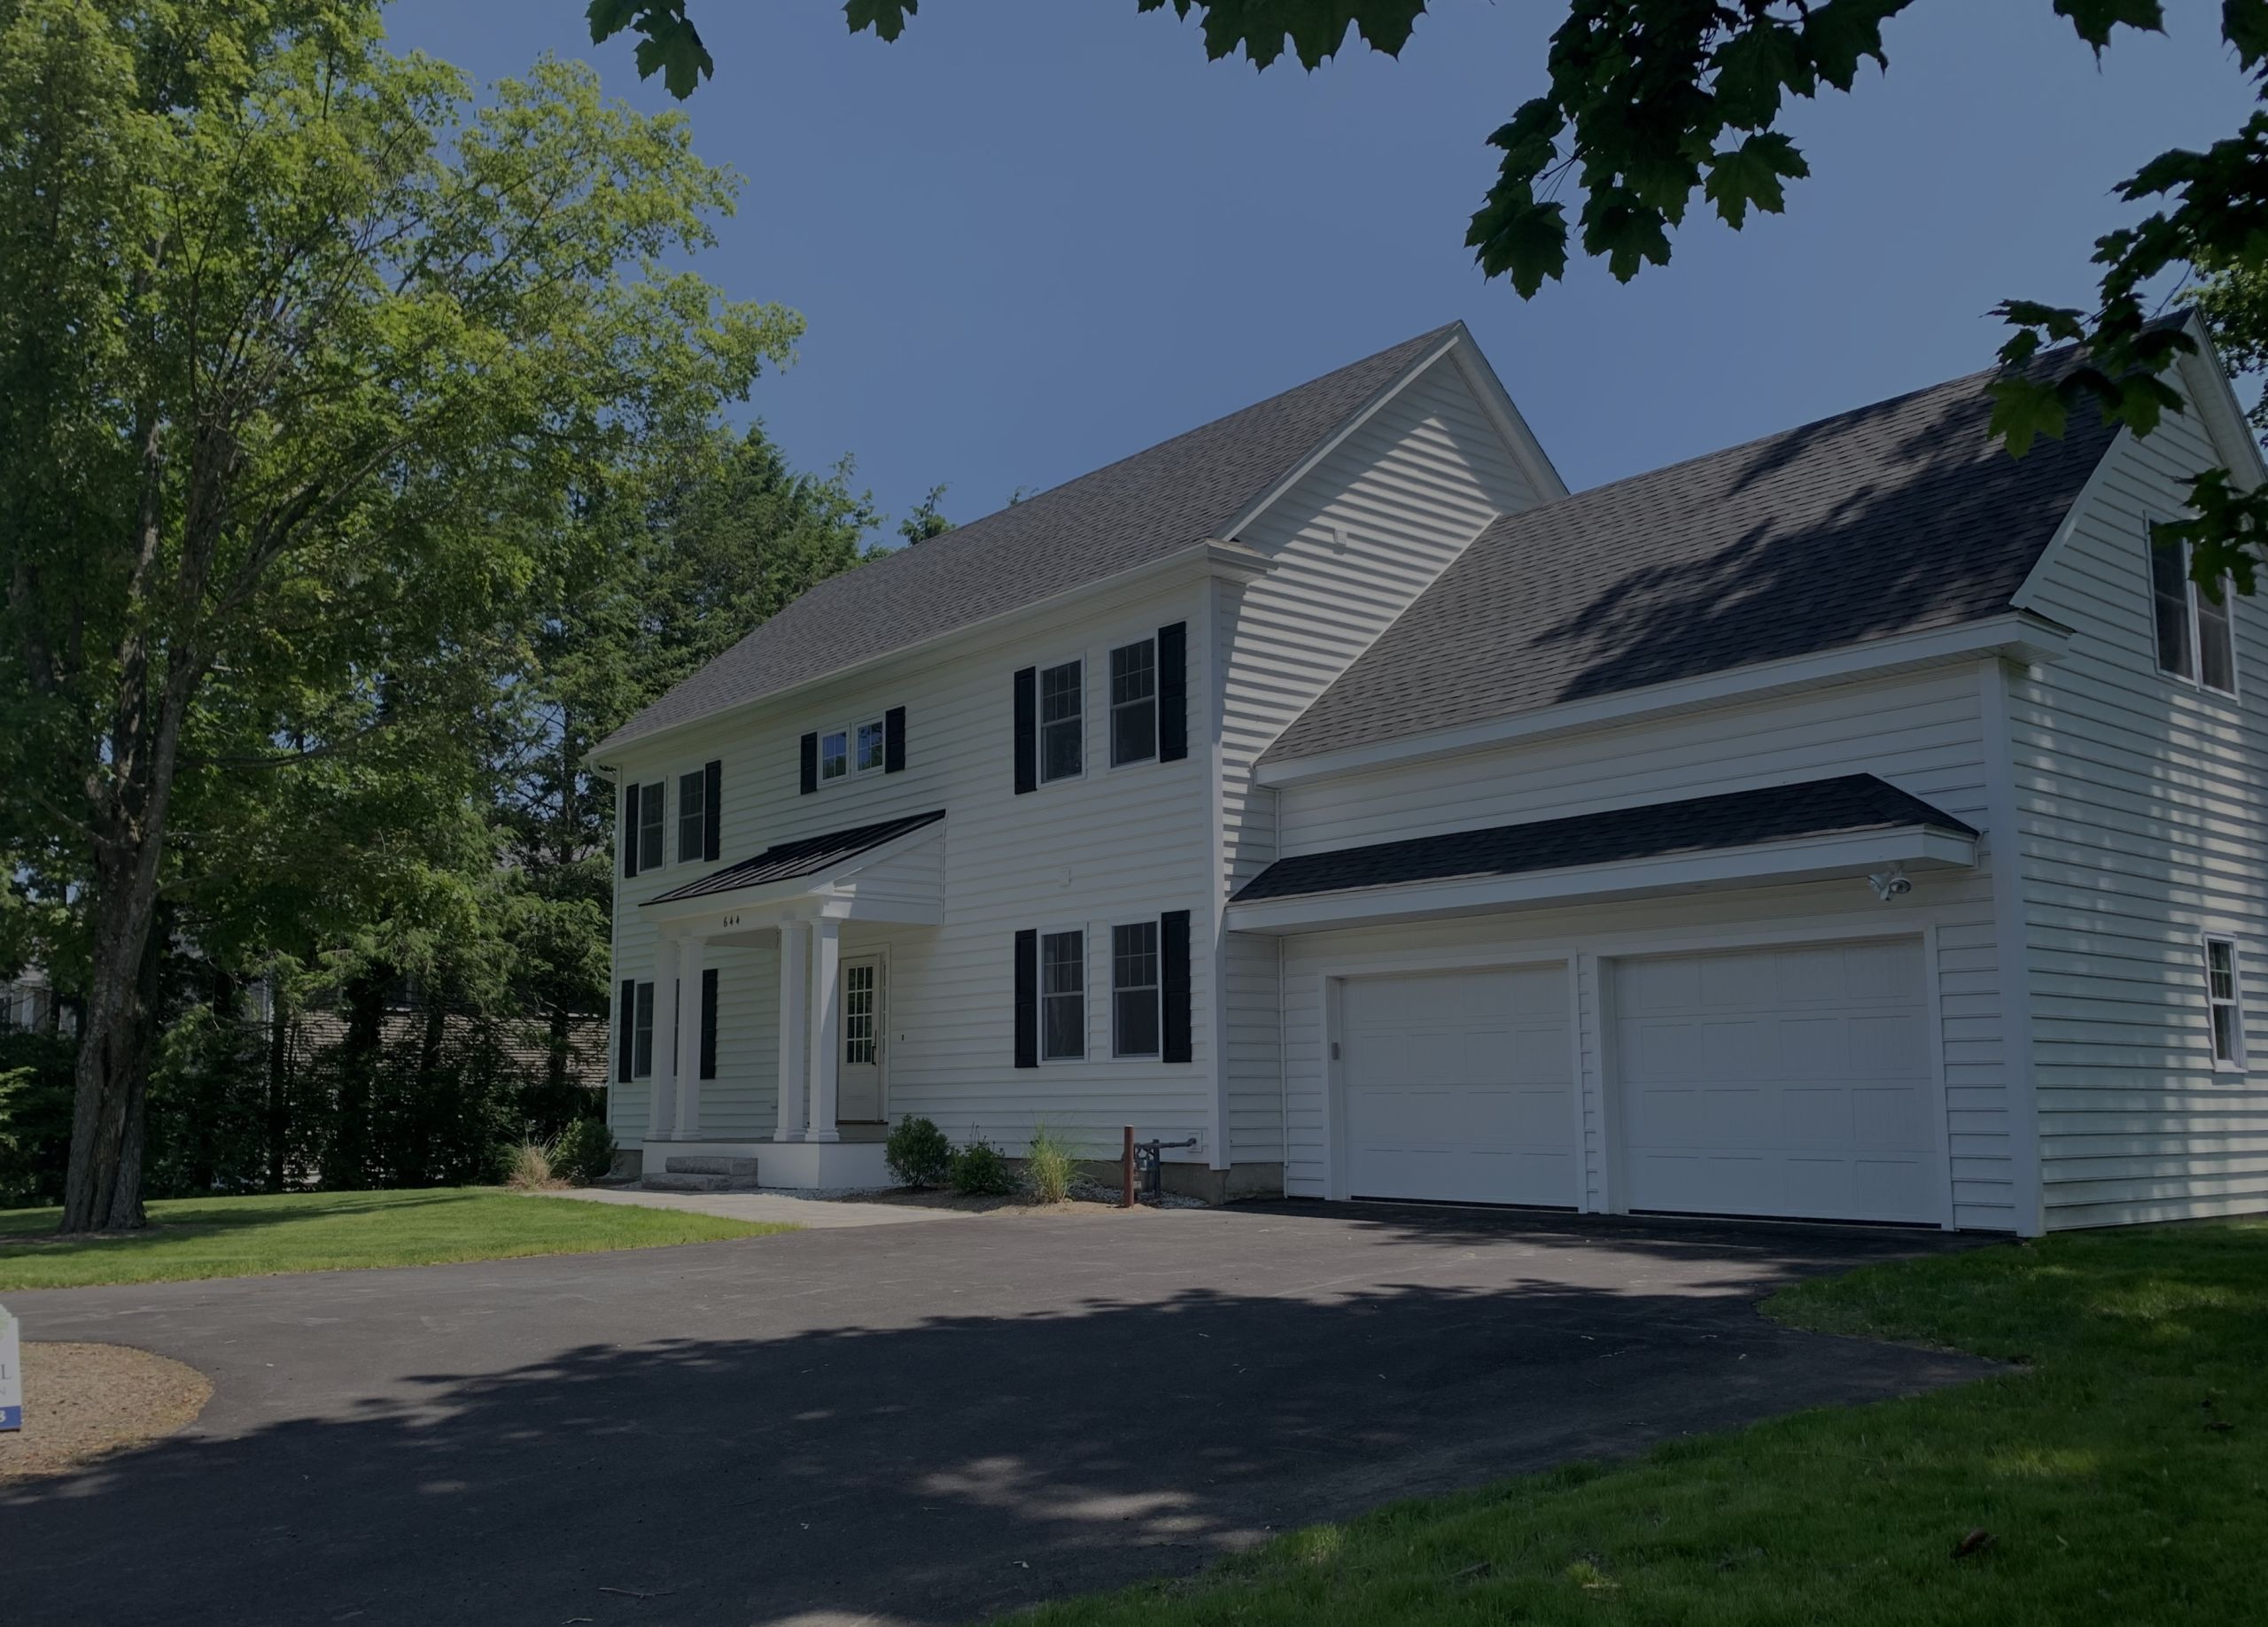 Under Agreement: Concord, MA- High Performance Homes